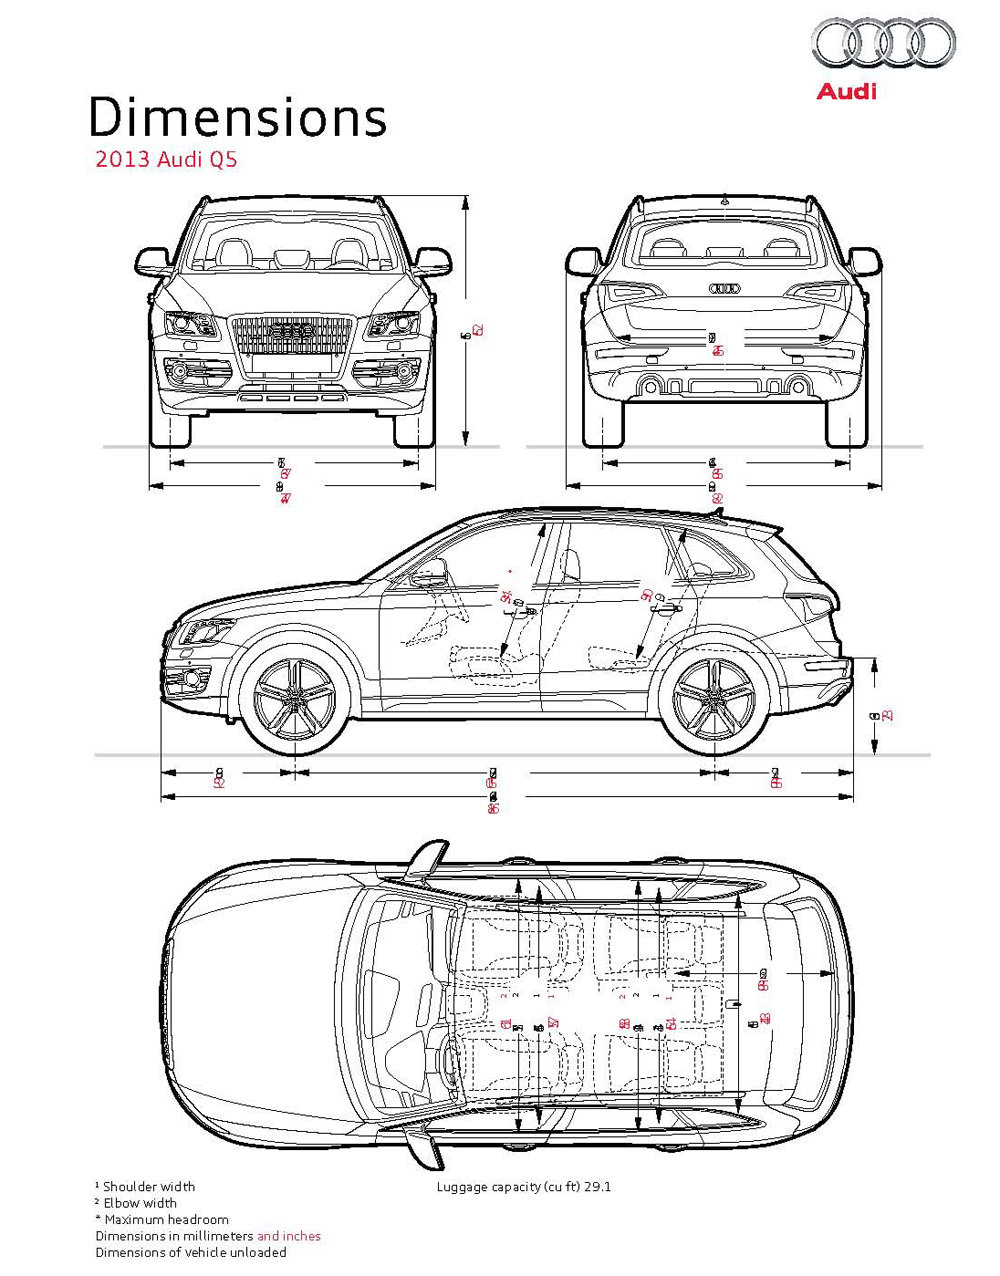 2013 Audi Q5 Engine Diagram The Incorporates Driver Assistance Technologies To Make Driving Experience Easier And More Enjoyable